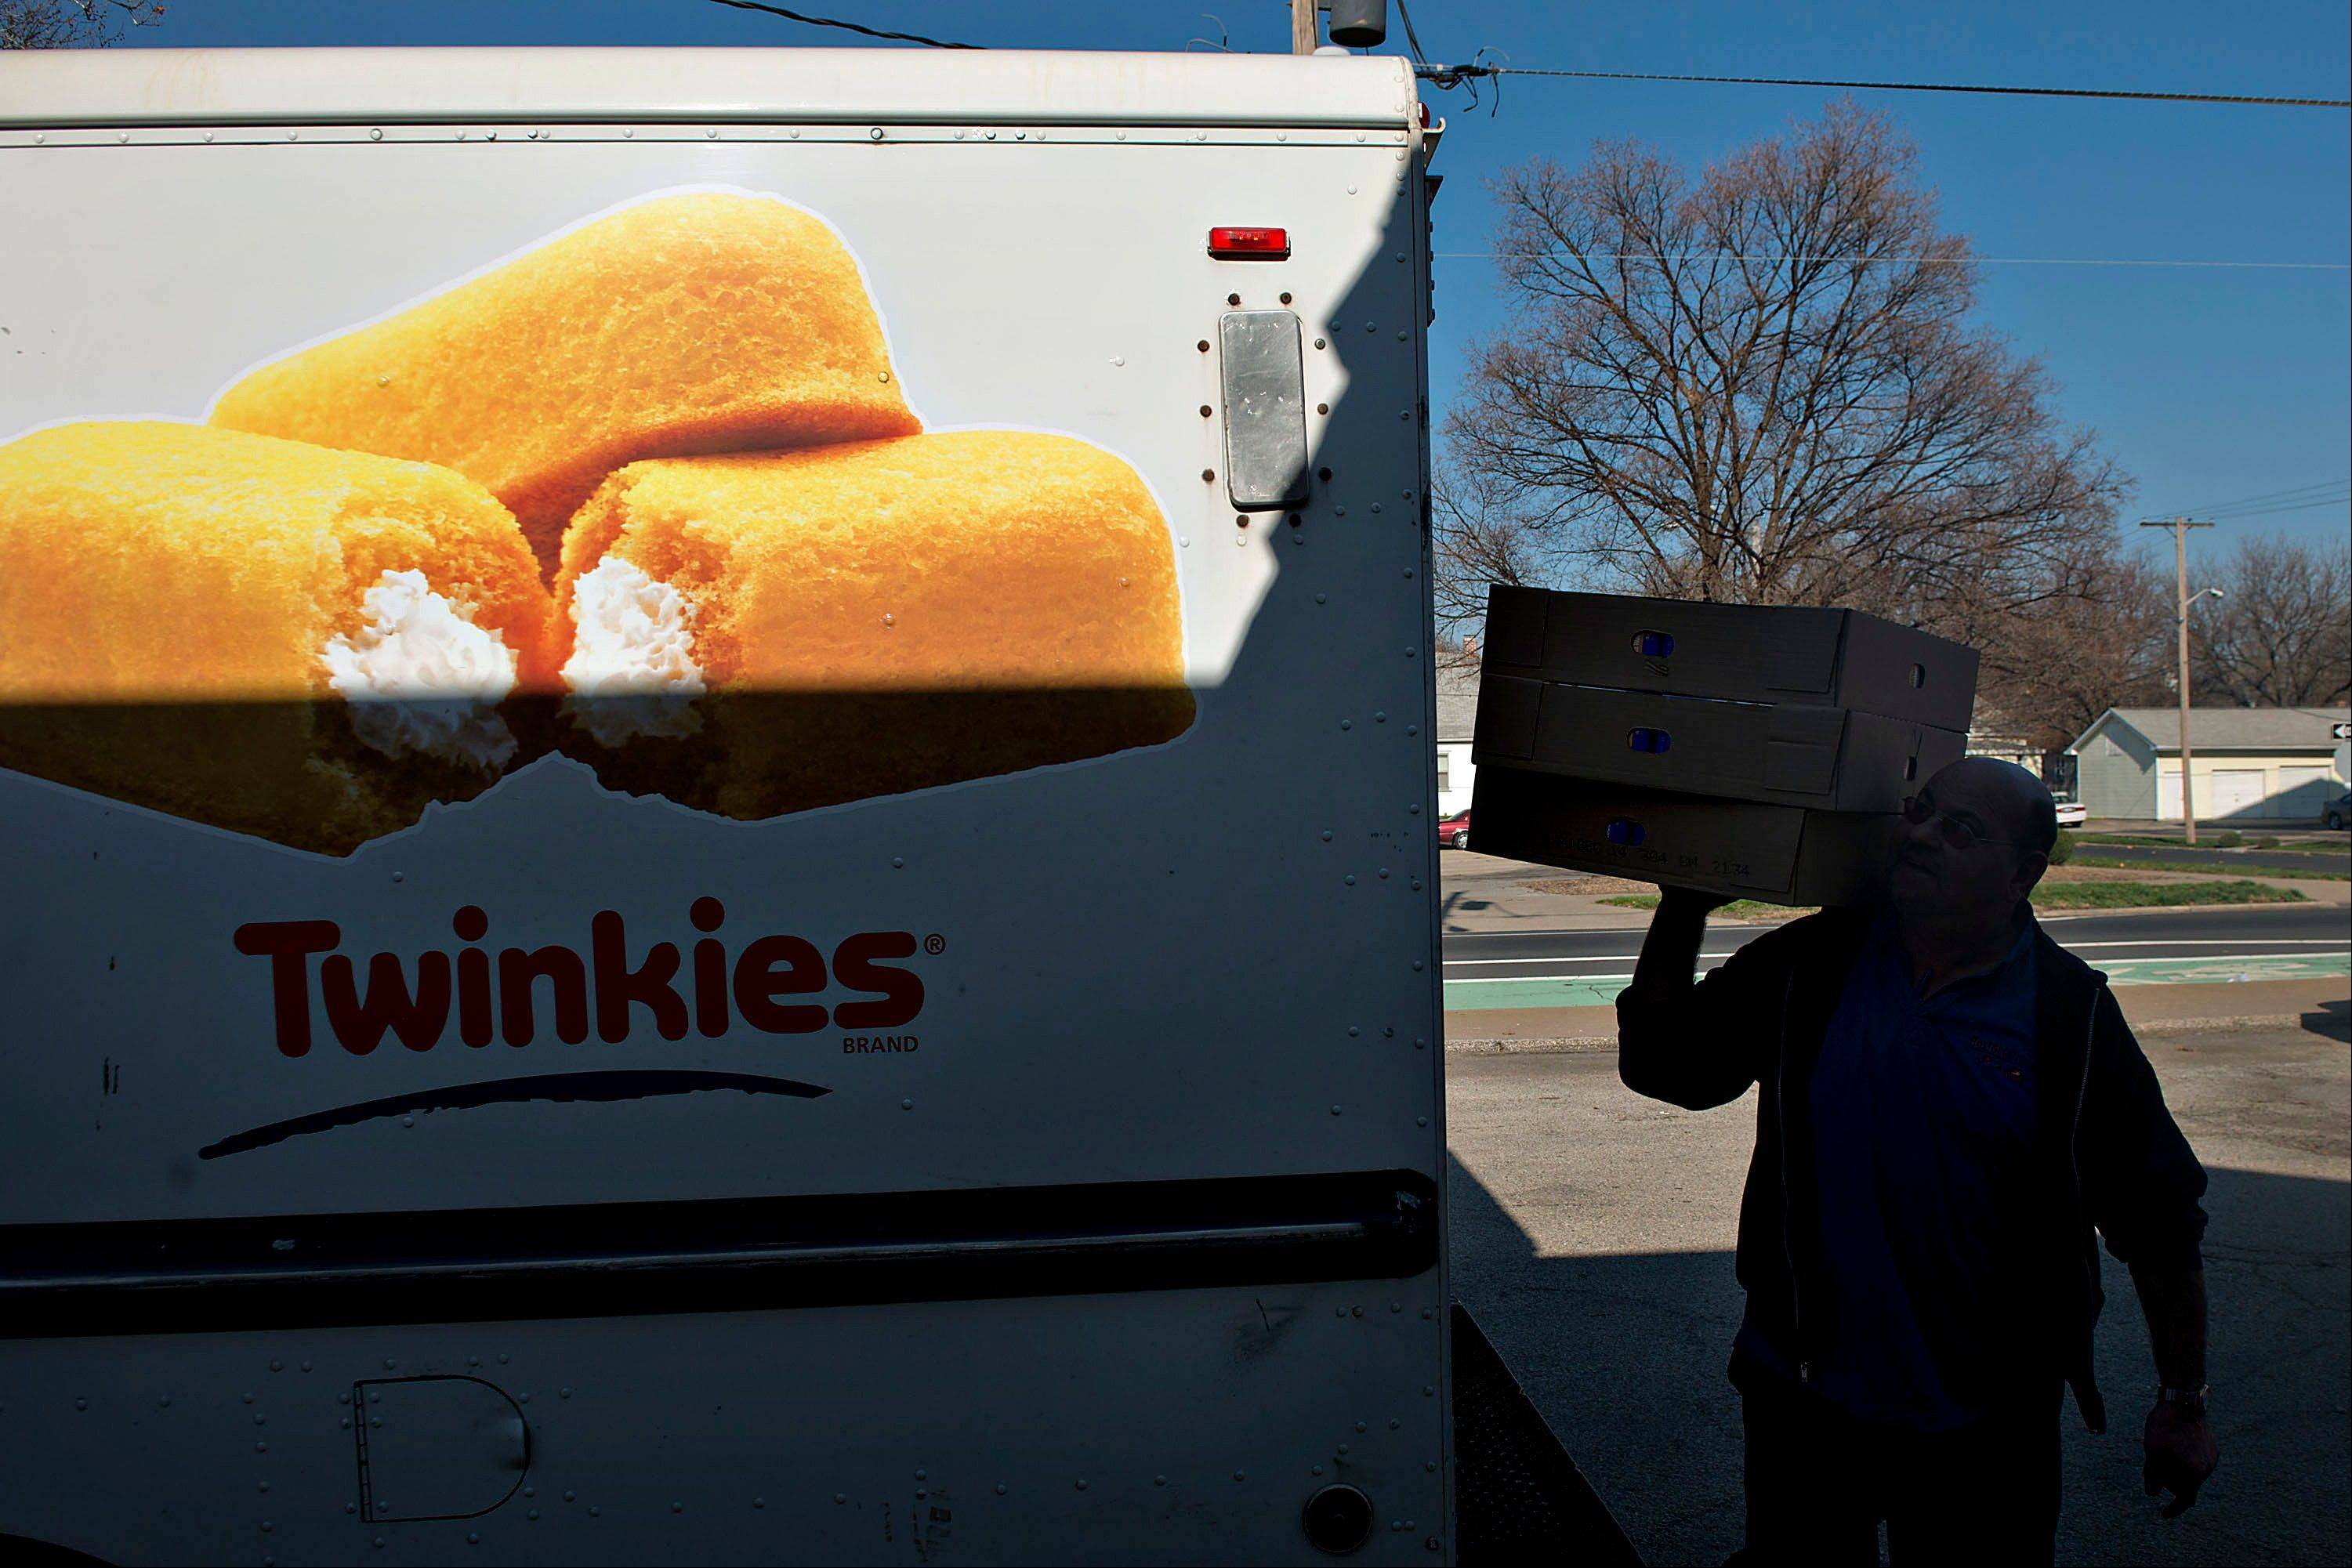 Gary Keller, a Hostess driver for 16-years, carries the last items of his final delivery Friday at a Hostess Brands Inc. Bakery Outlet store in Peoria. Hostess Brands Inc., the bankrupt maker of Wonder bread and Twinkies, said it will fire more than 18,000 workers and liquidate after a nationwide strike by bakery workers crippled operations.